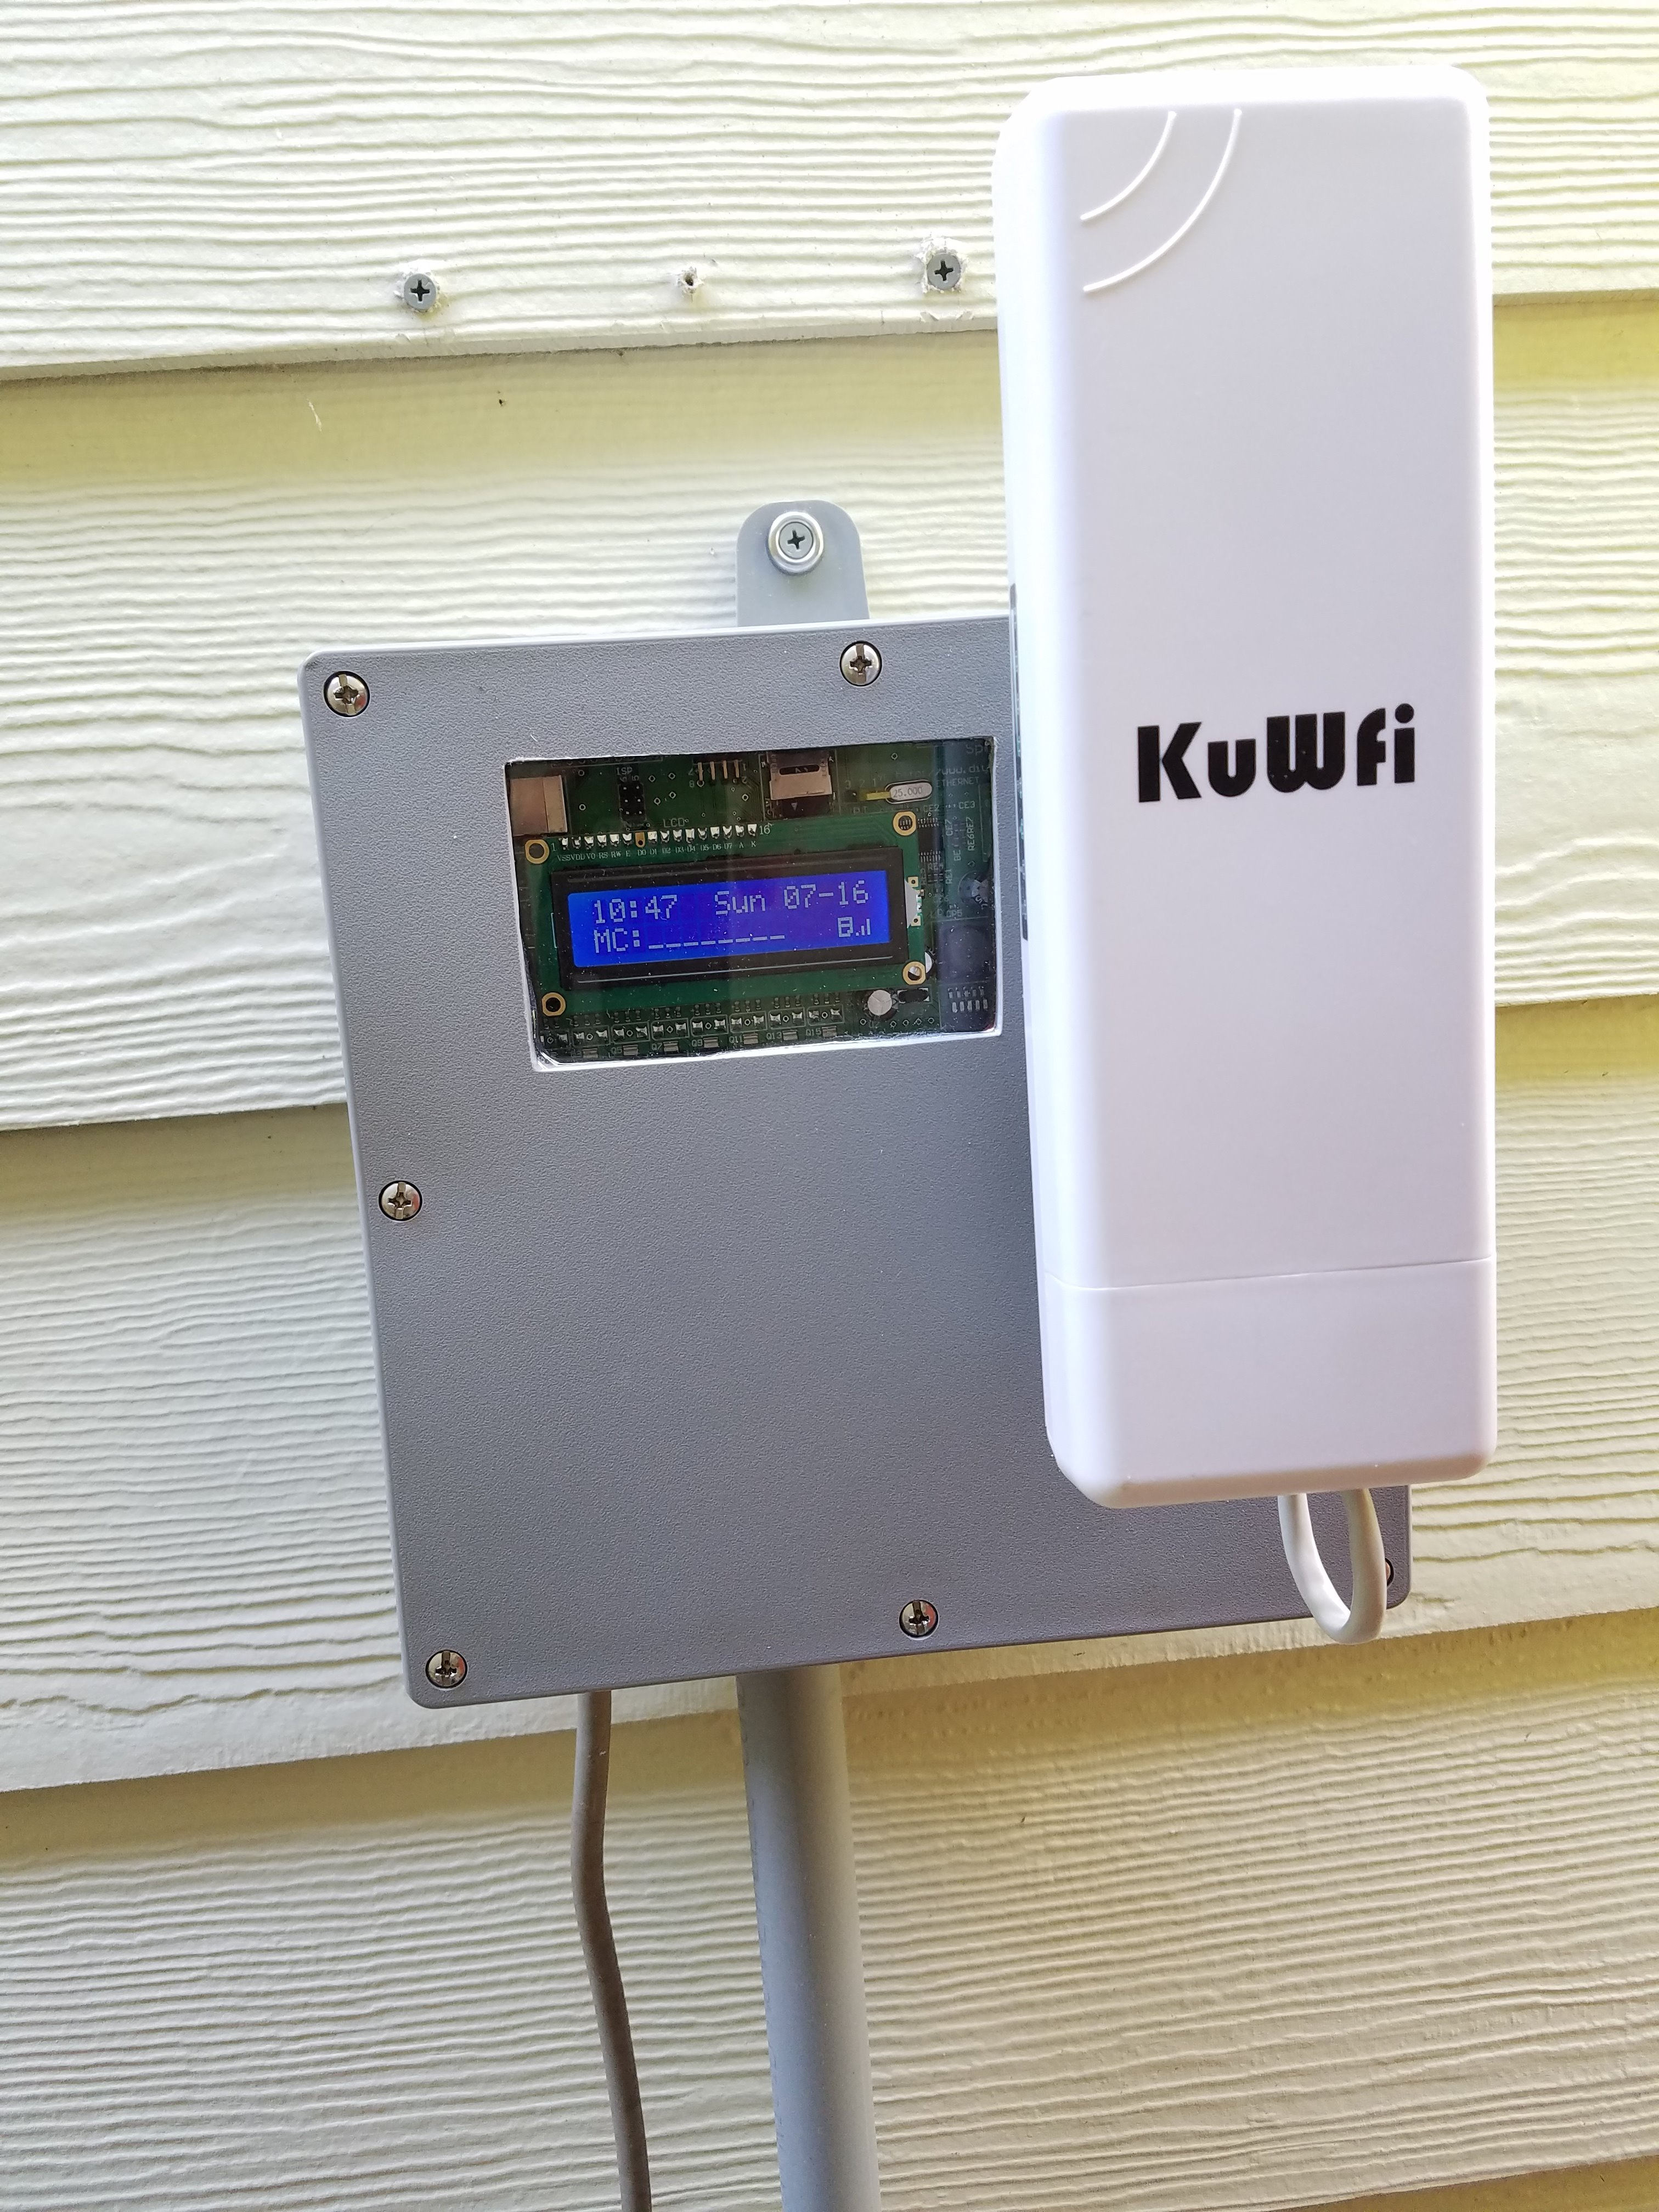 Picture of Excellent (and Inexpensive) Alternative Smart Irrigation Controller.